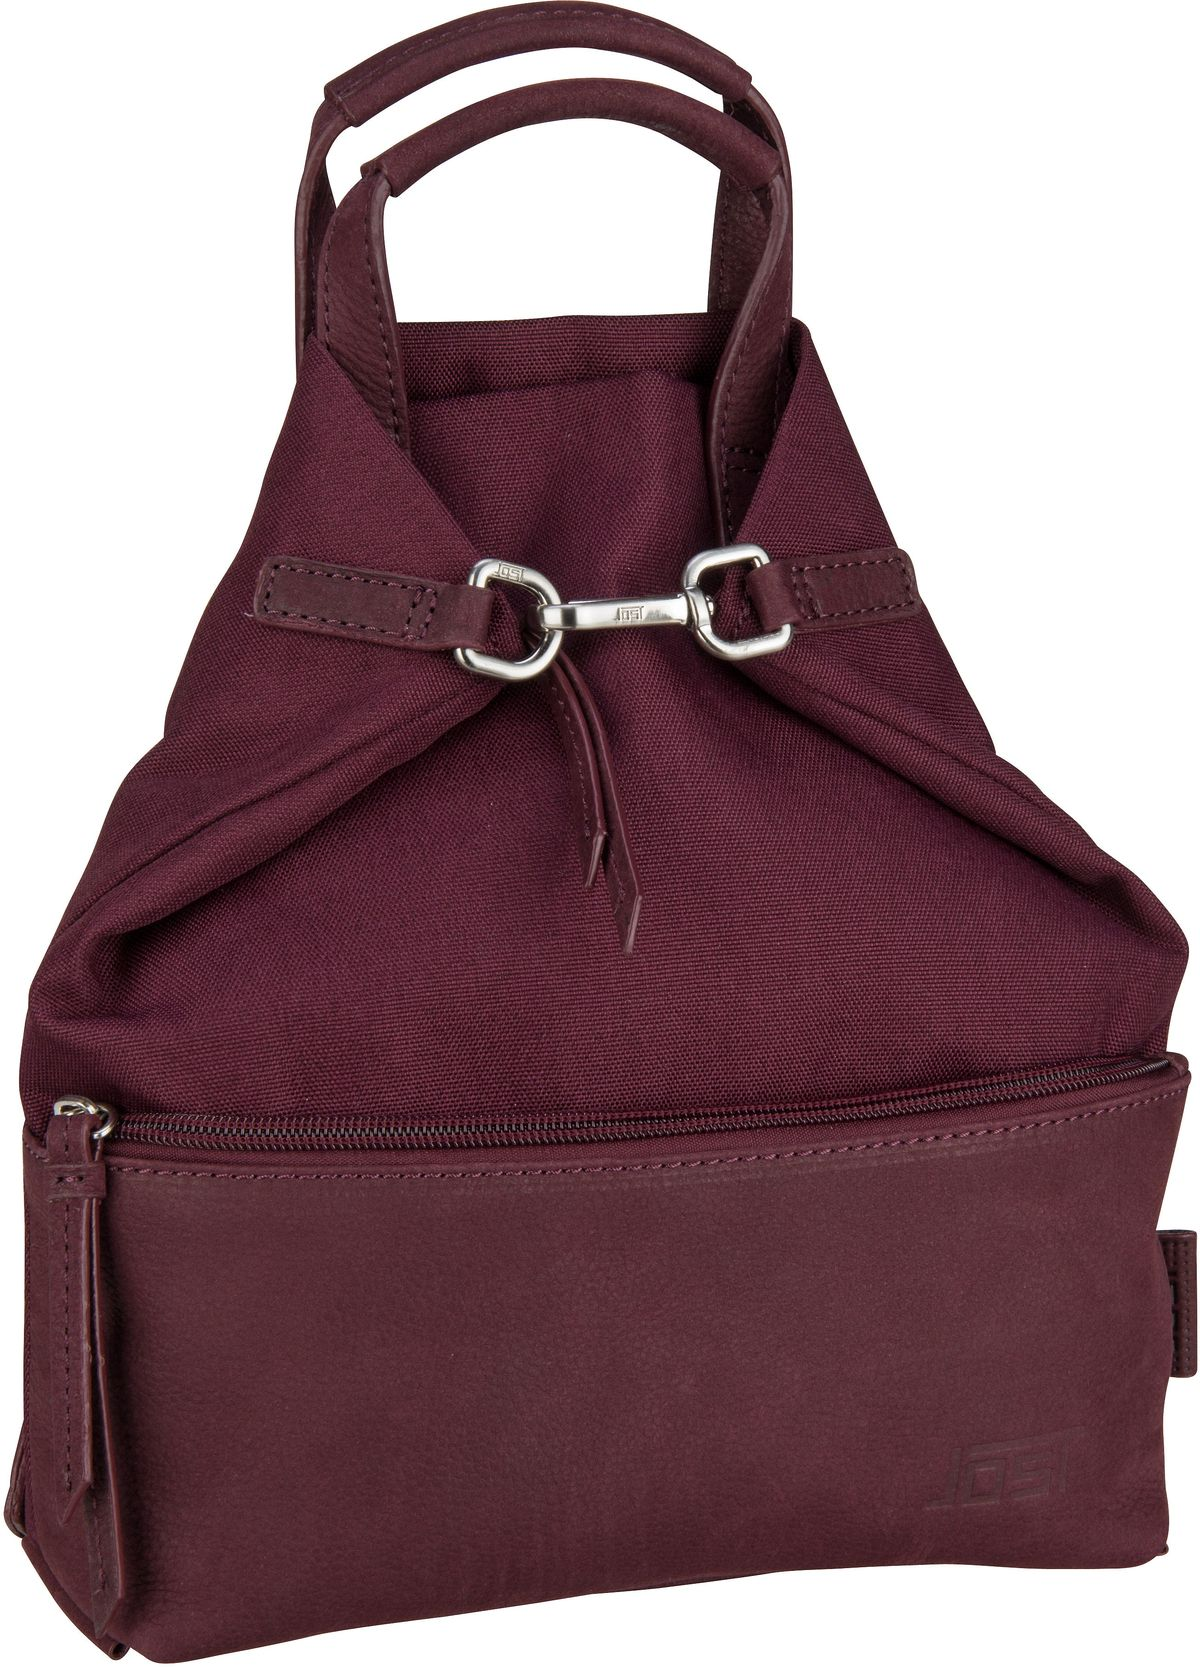 Jost Rucksack / Daypack 2715 X-Change Bag Mini Bordeaux